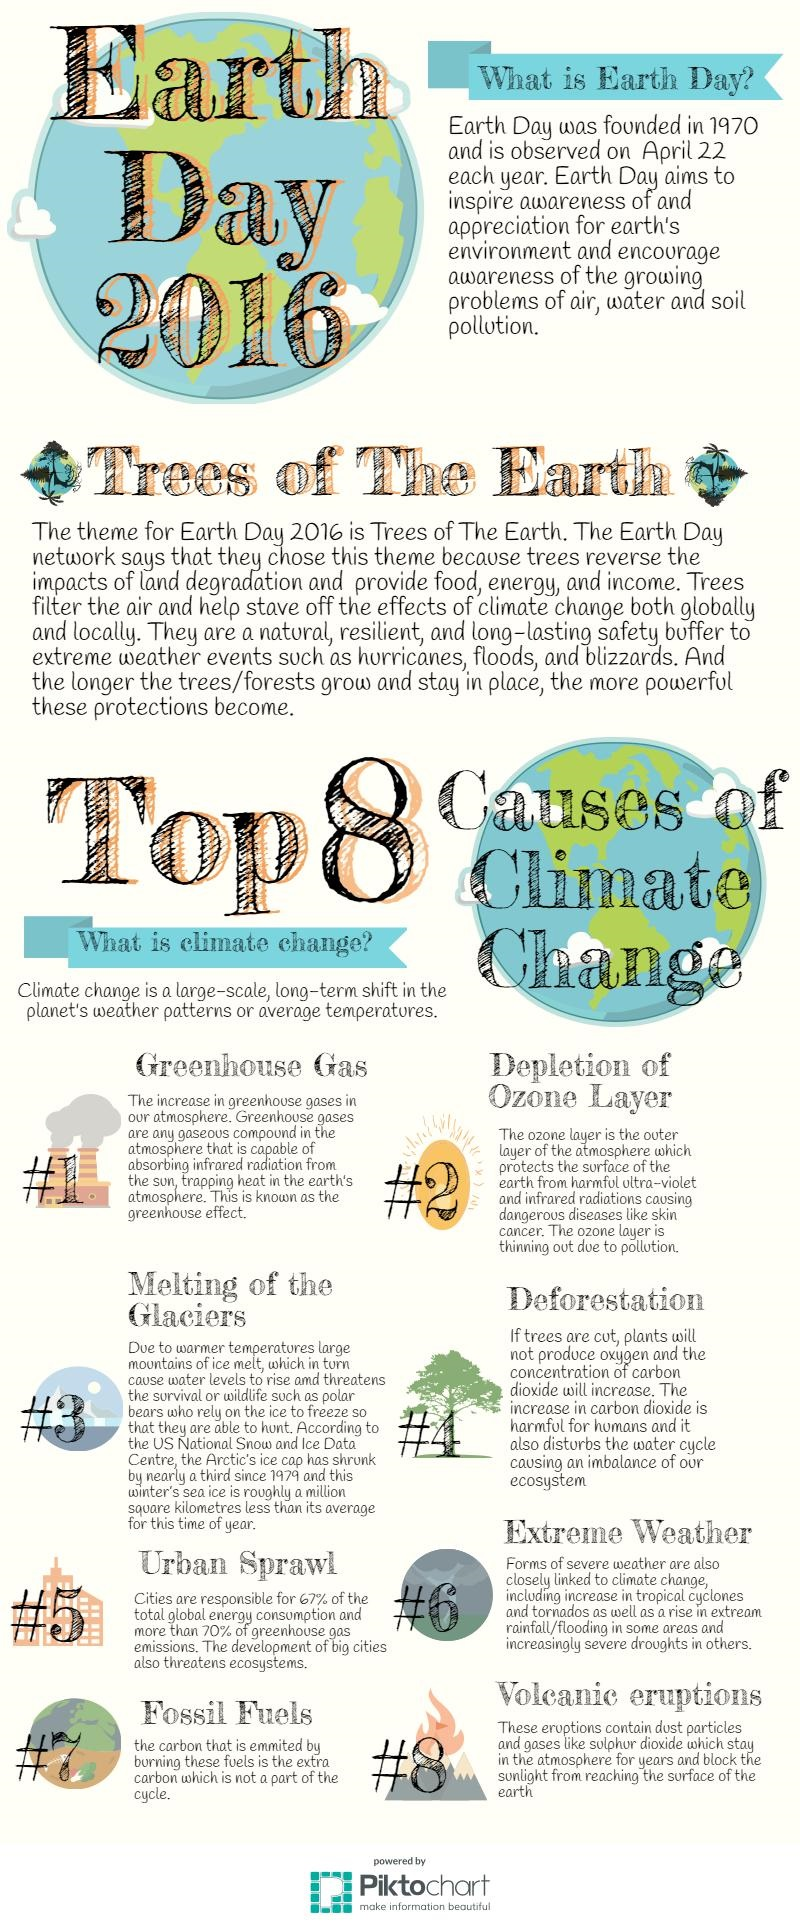 climate-change.